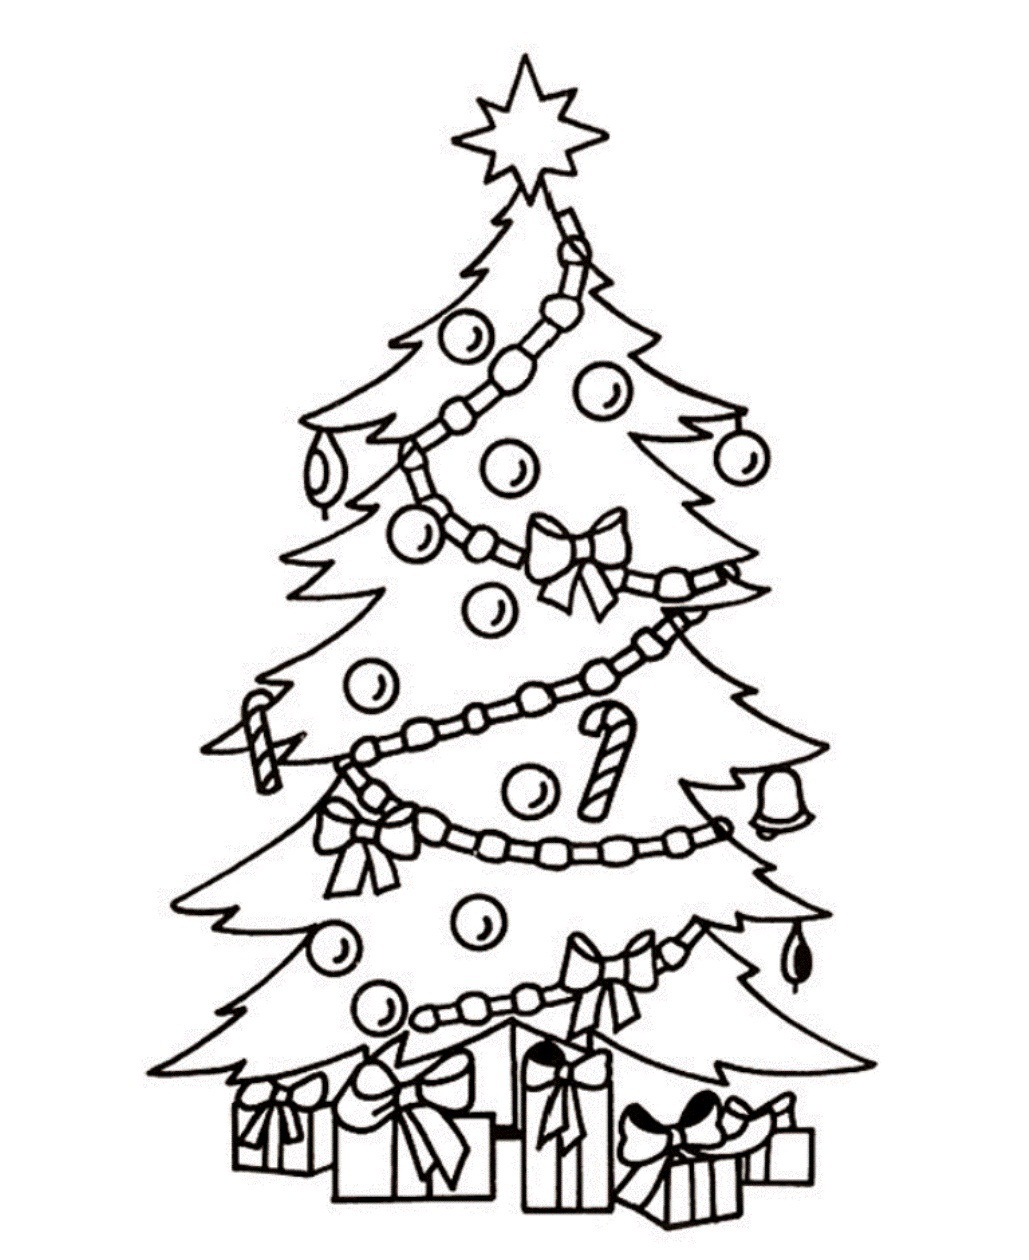 1029x1260 Presents Coloring Pages